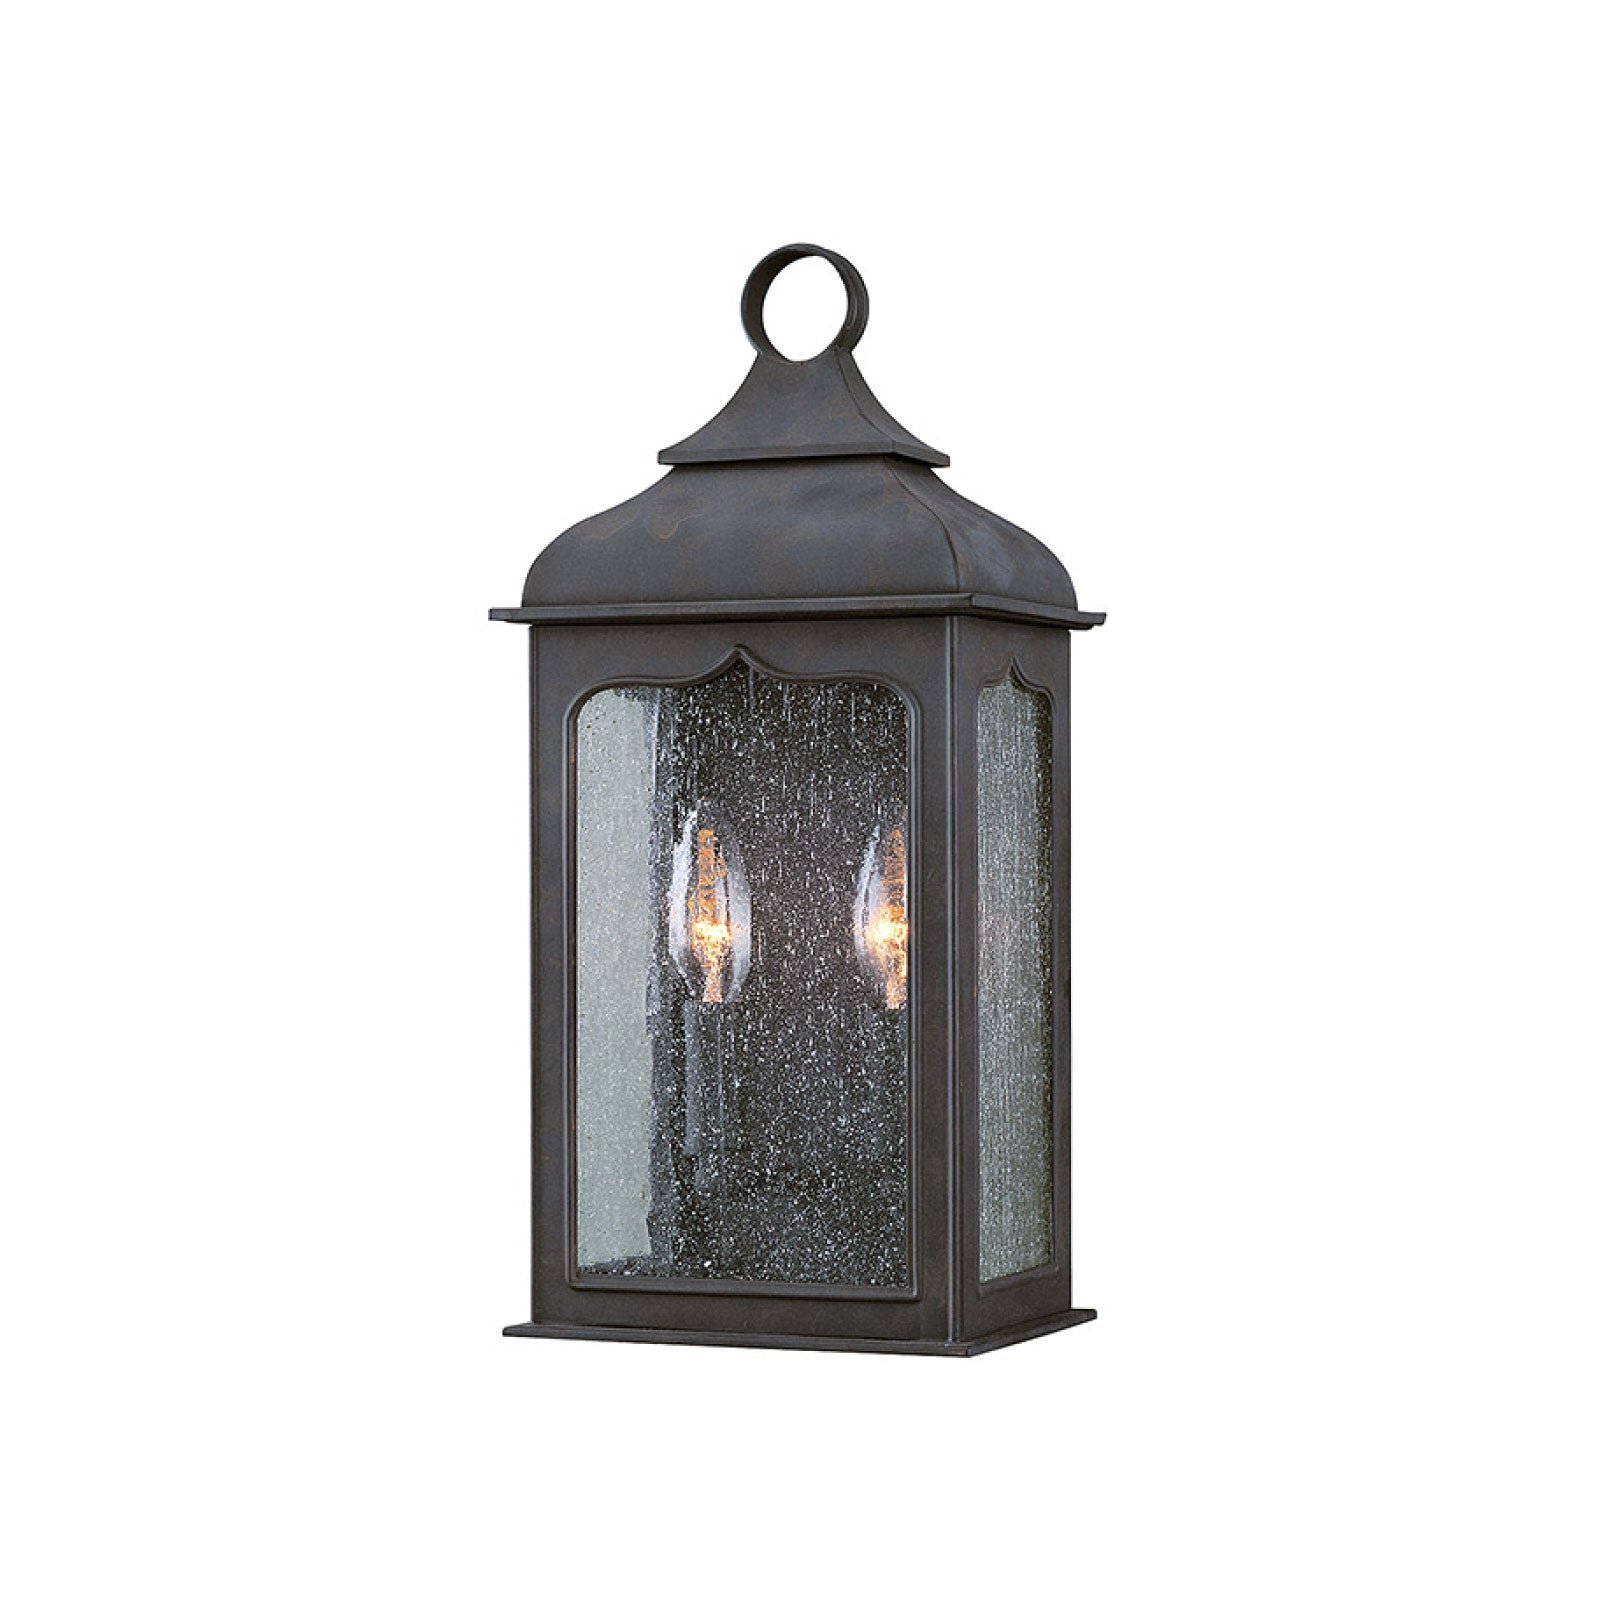 Troy Wall Lantern - Medium